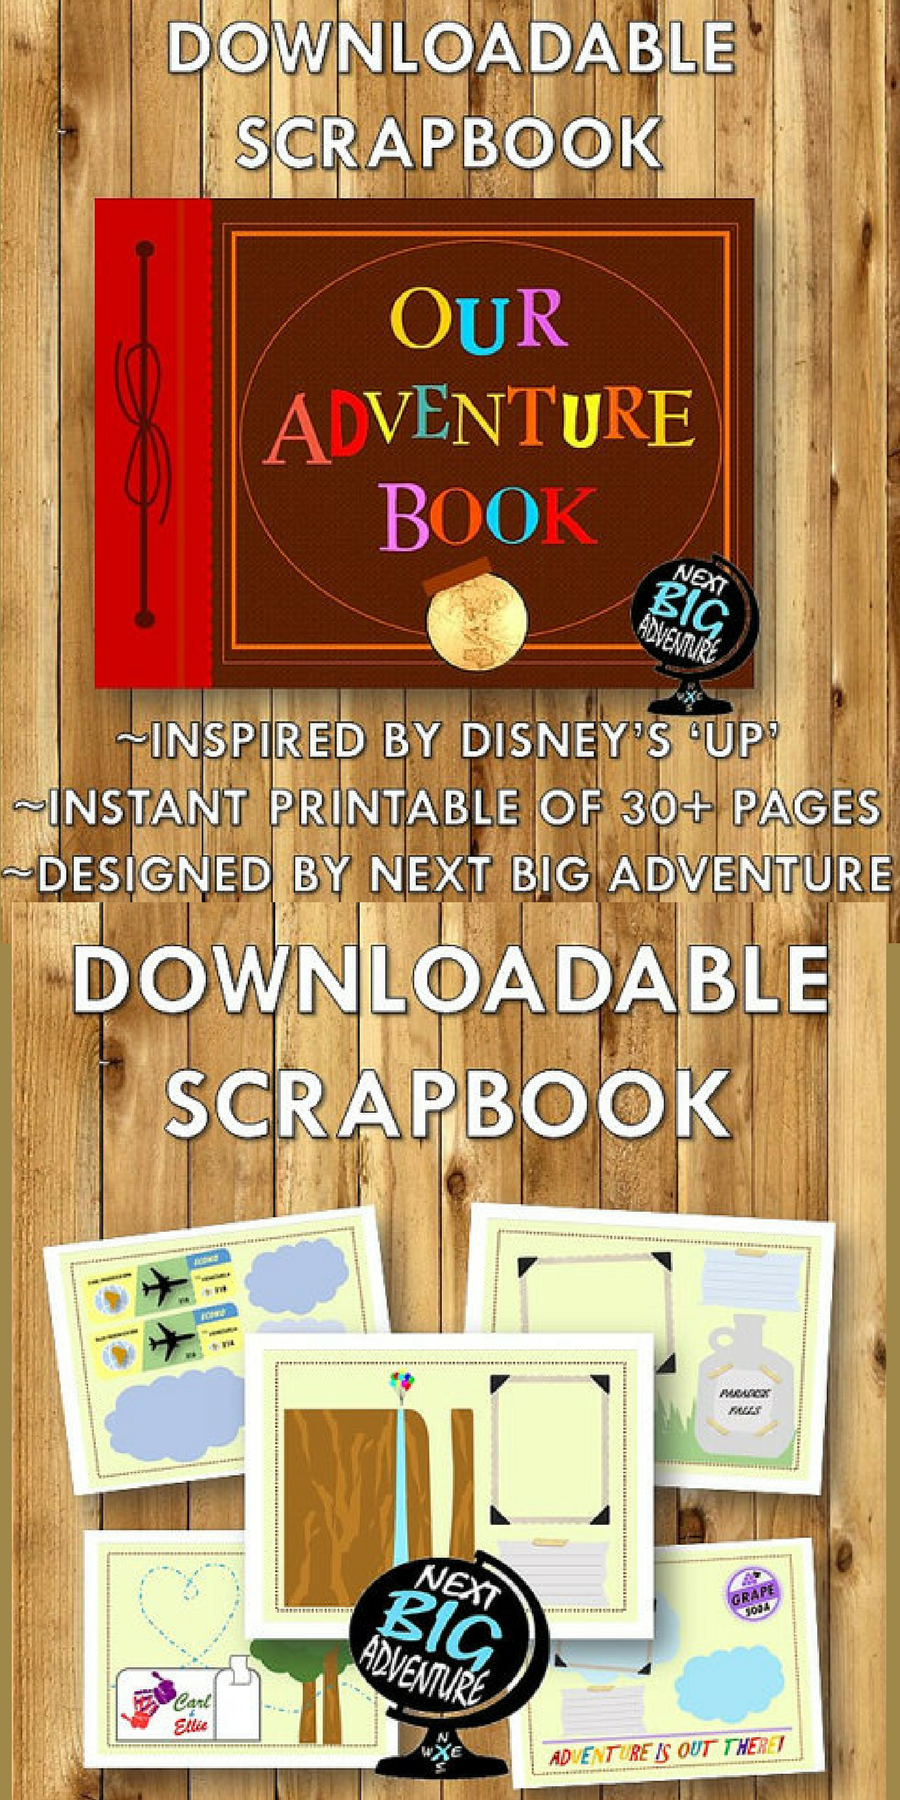 graphic regarding Our Adventure Book Printable titled UP encouraged printable sbook. Best reward principle. Our